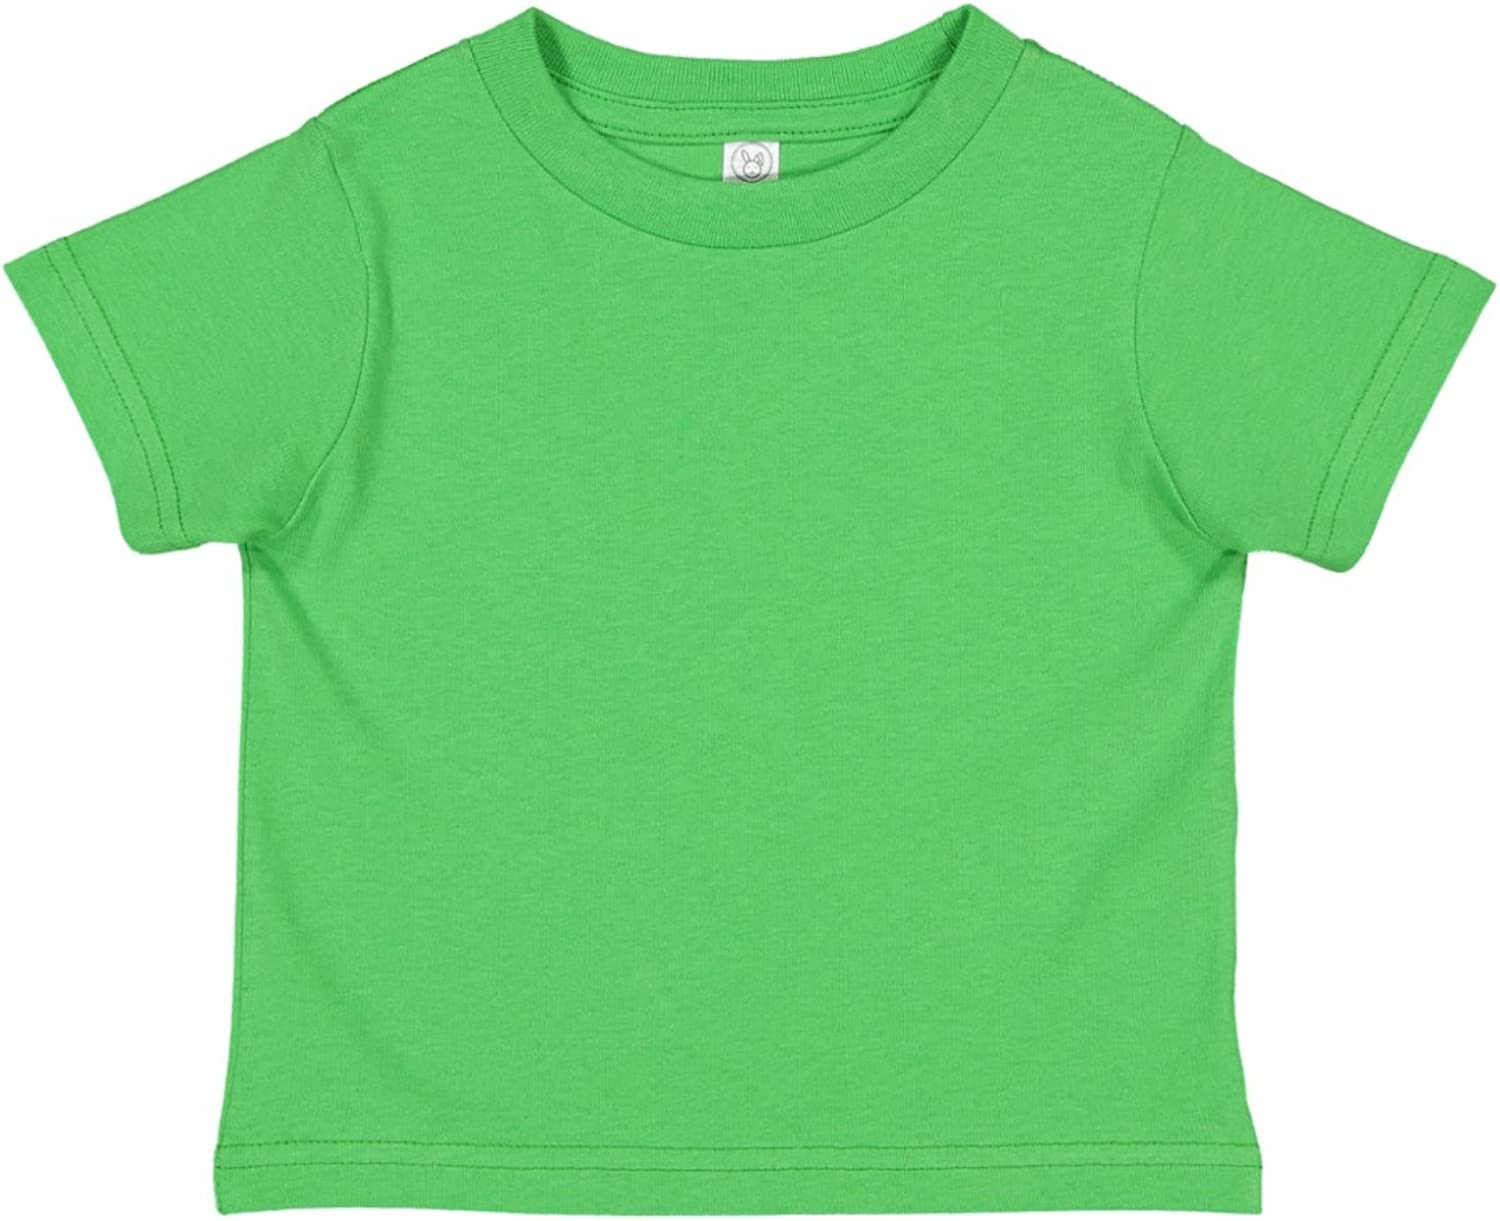 RABBIT SKINS 4.5 oz. Fine Jersey T-Shirt (3321)